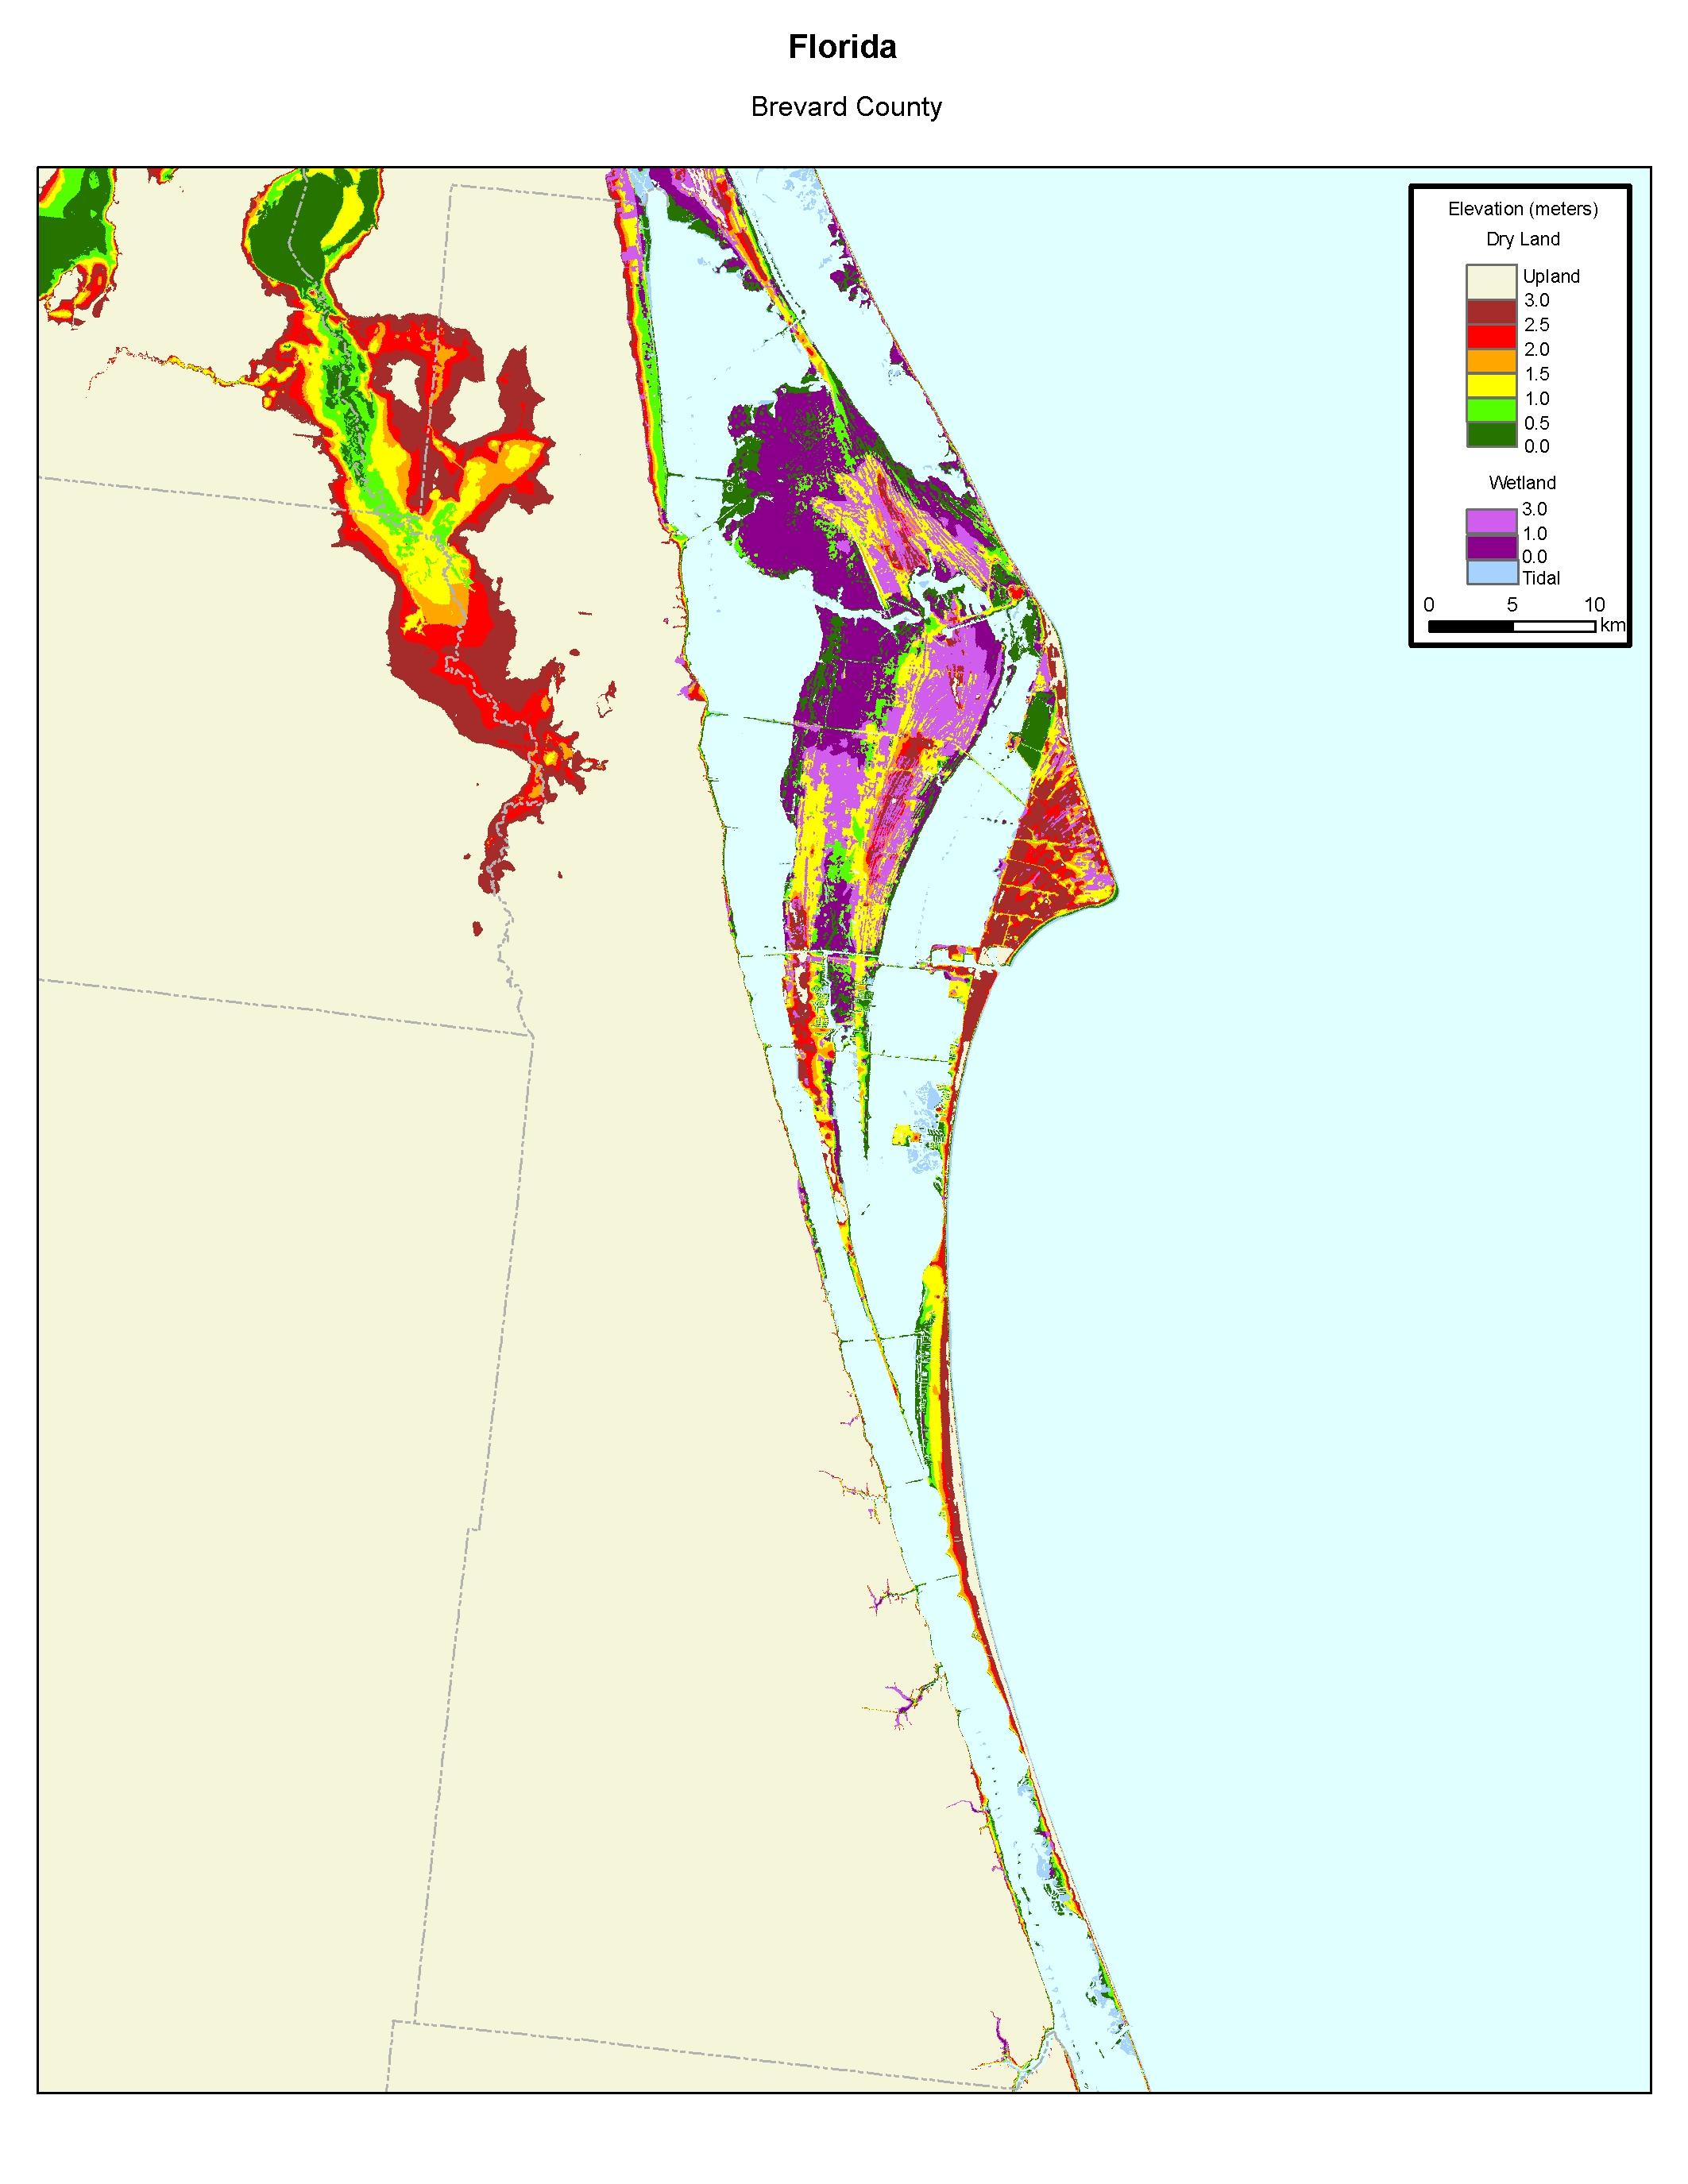 More Sea Level Rise Maps Of Florida's Atlantic Coast - Florida Elevation Map By County